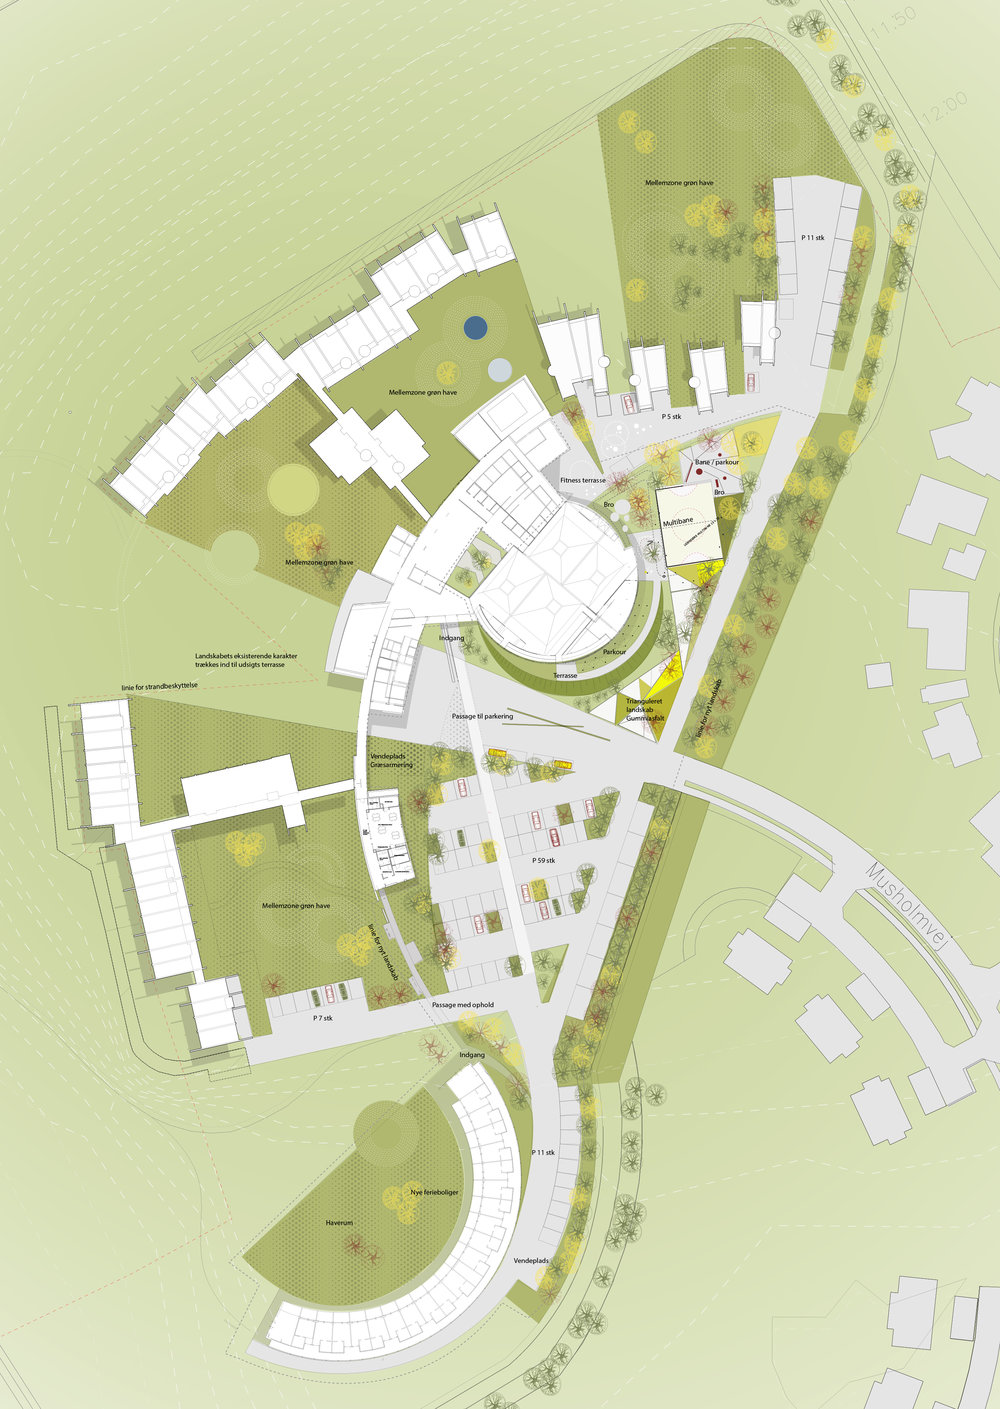 Plan: URBANlab nordic in cooperation with AART architects